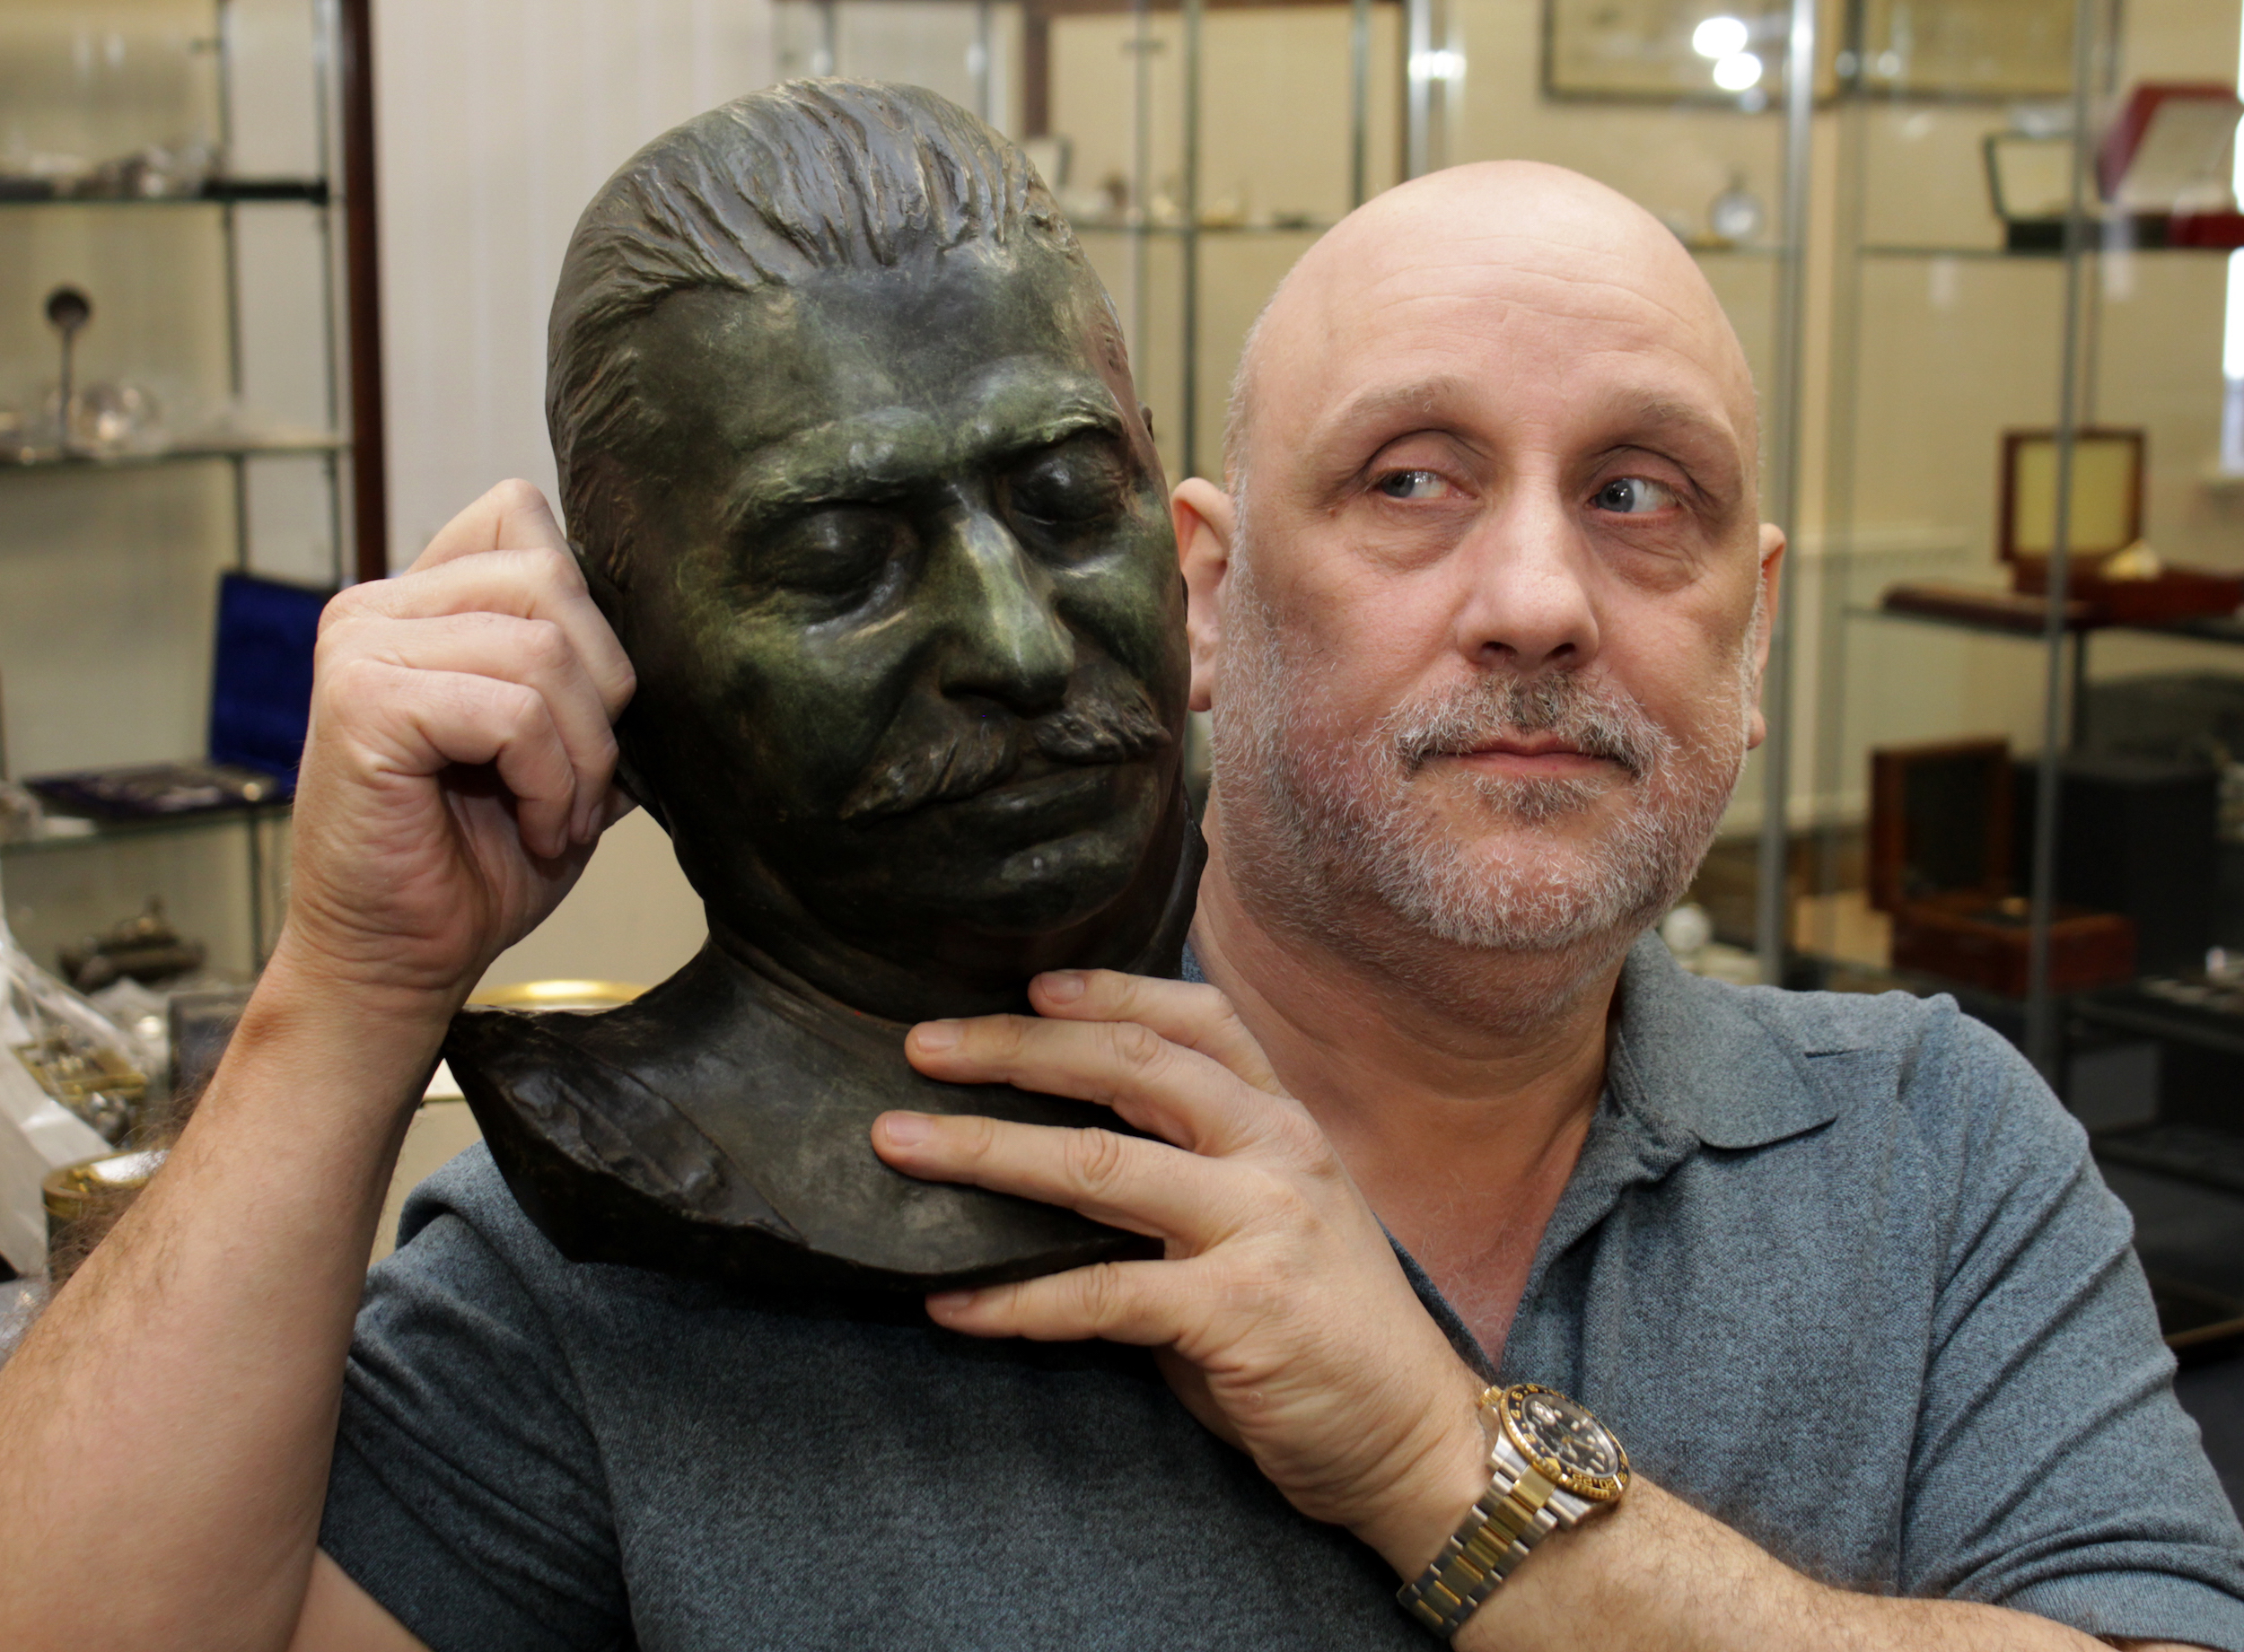 Stalin Death Mask To Make Thousands In Suffolk Antique